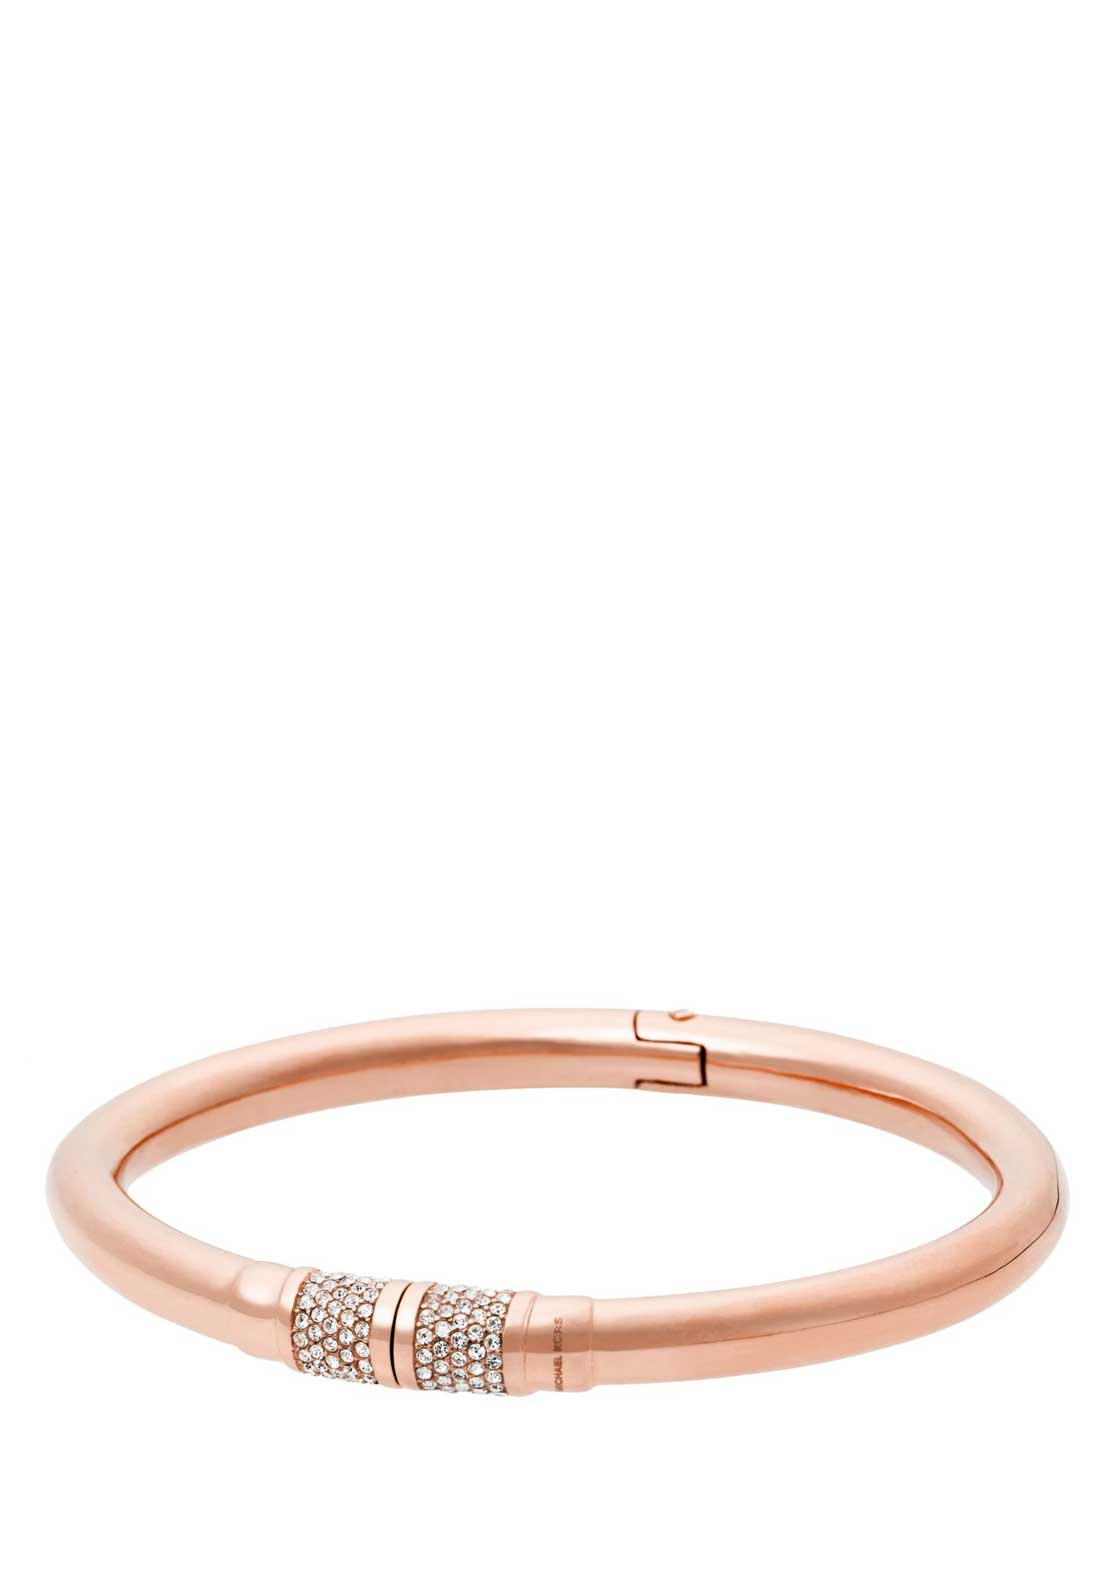 Michael Kors Ladies Park Avenue Hinged Bangle, Rose Gold